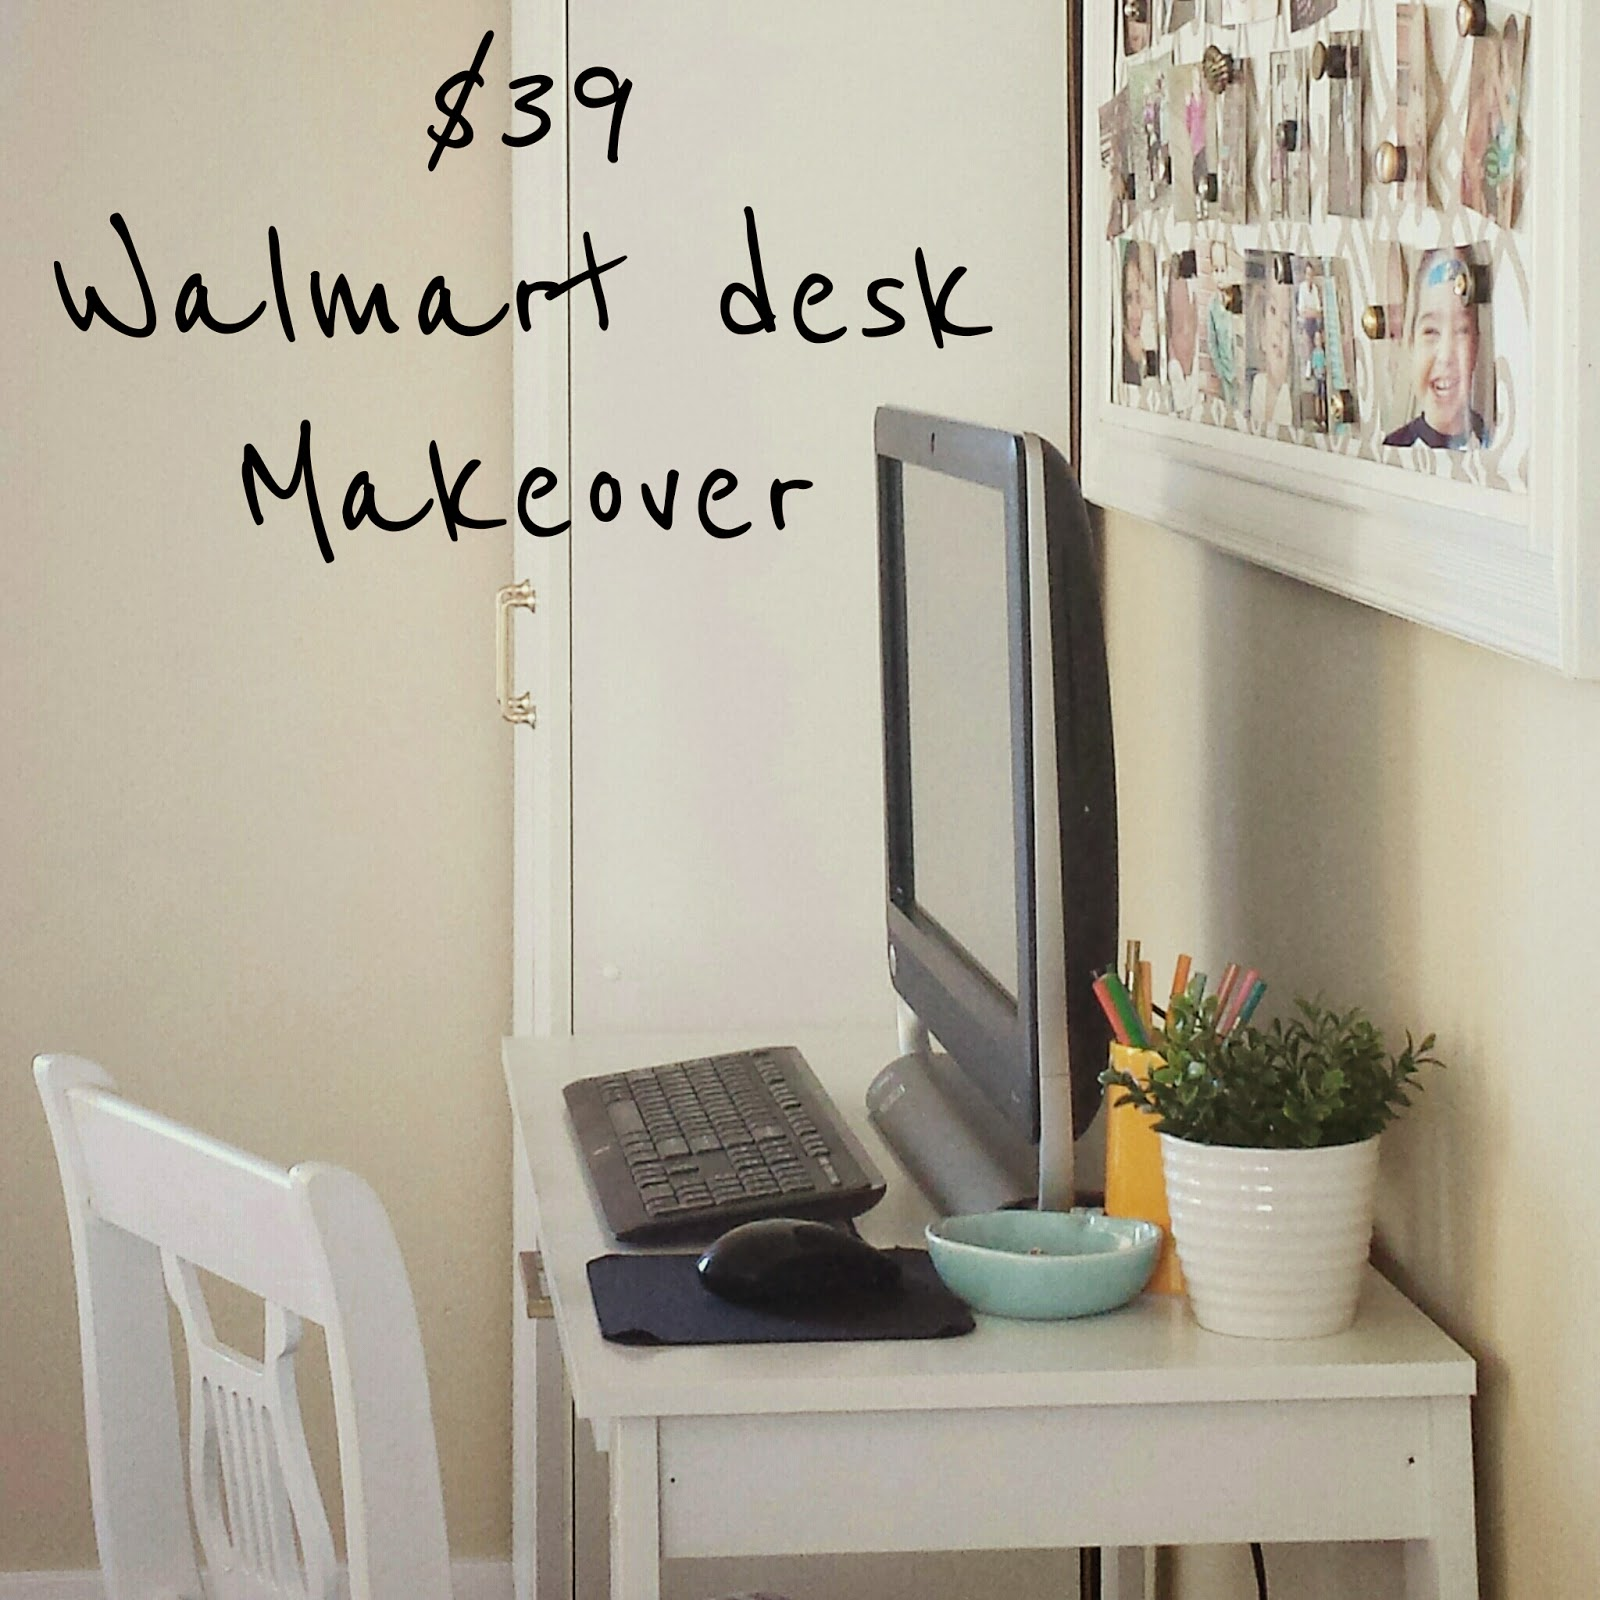 office desk at walmart diy 39 walmart desk makeover tutorial abm office desk diy